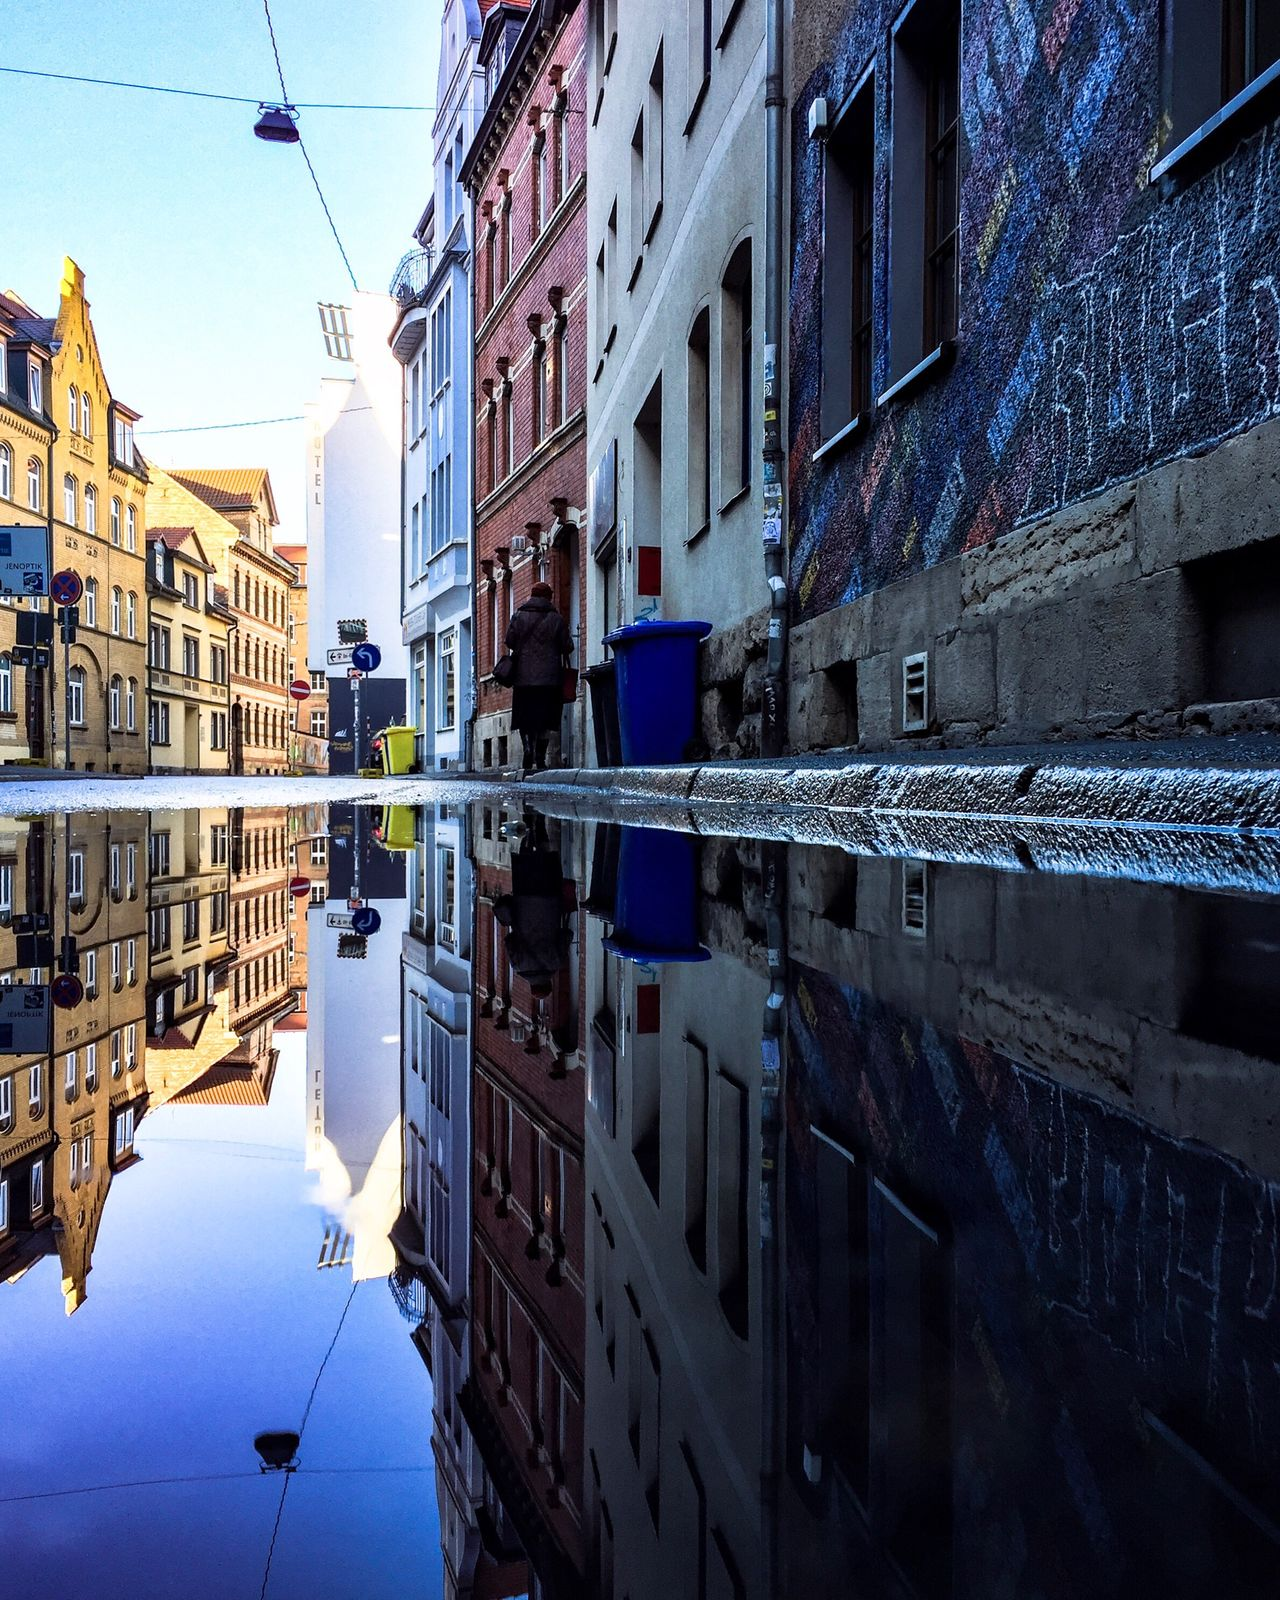 My Year My View Reflection Building Exterior Architecture Water Built Structure Waterfront Sky City Outdoors Nautical Vessel Nature Day No People Beauty In Nature Puddle Puddleography Puddle Reflections